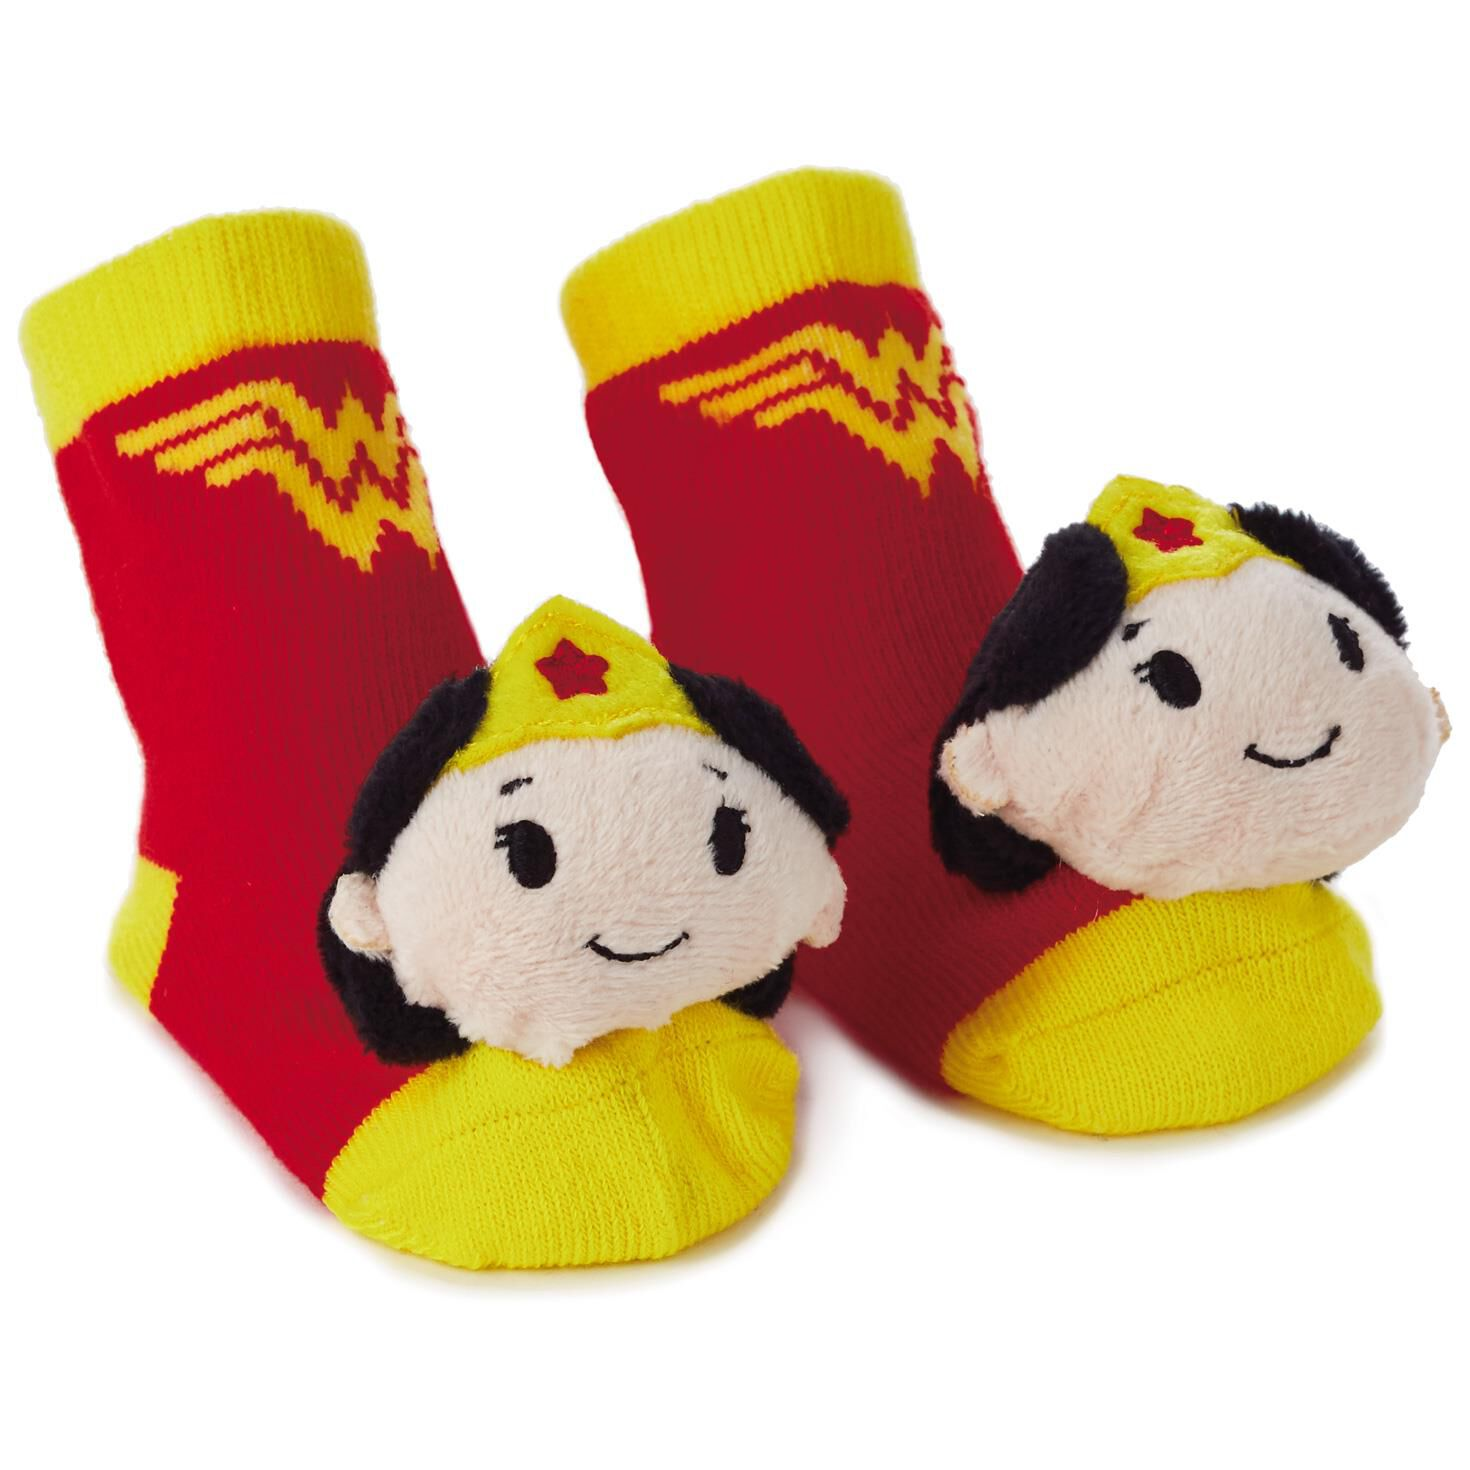 Wonder Woman Itty Bittys Baby Rattle Socks Baby Clothes Hallmark